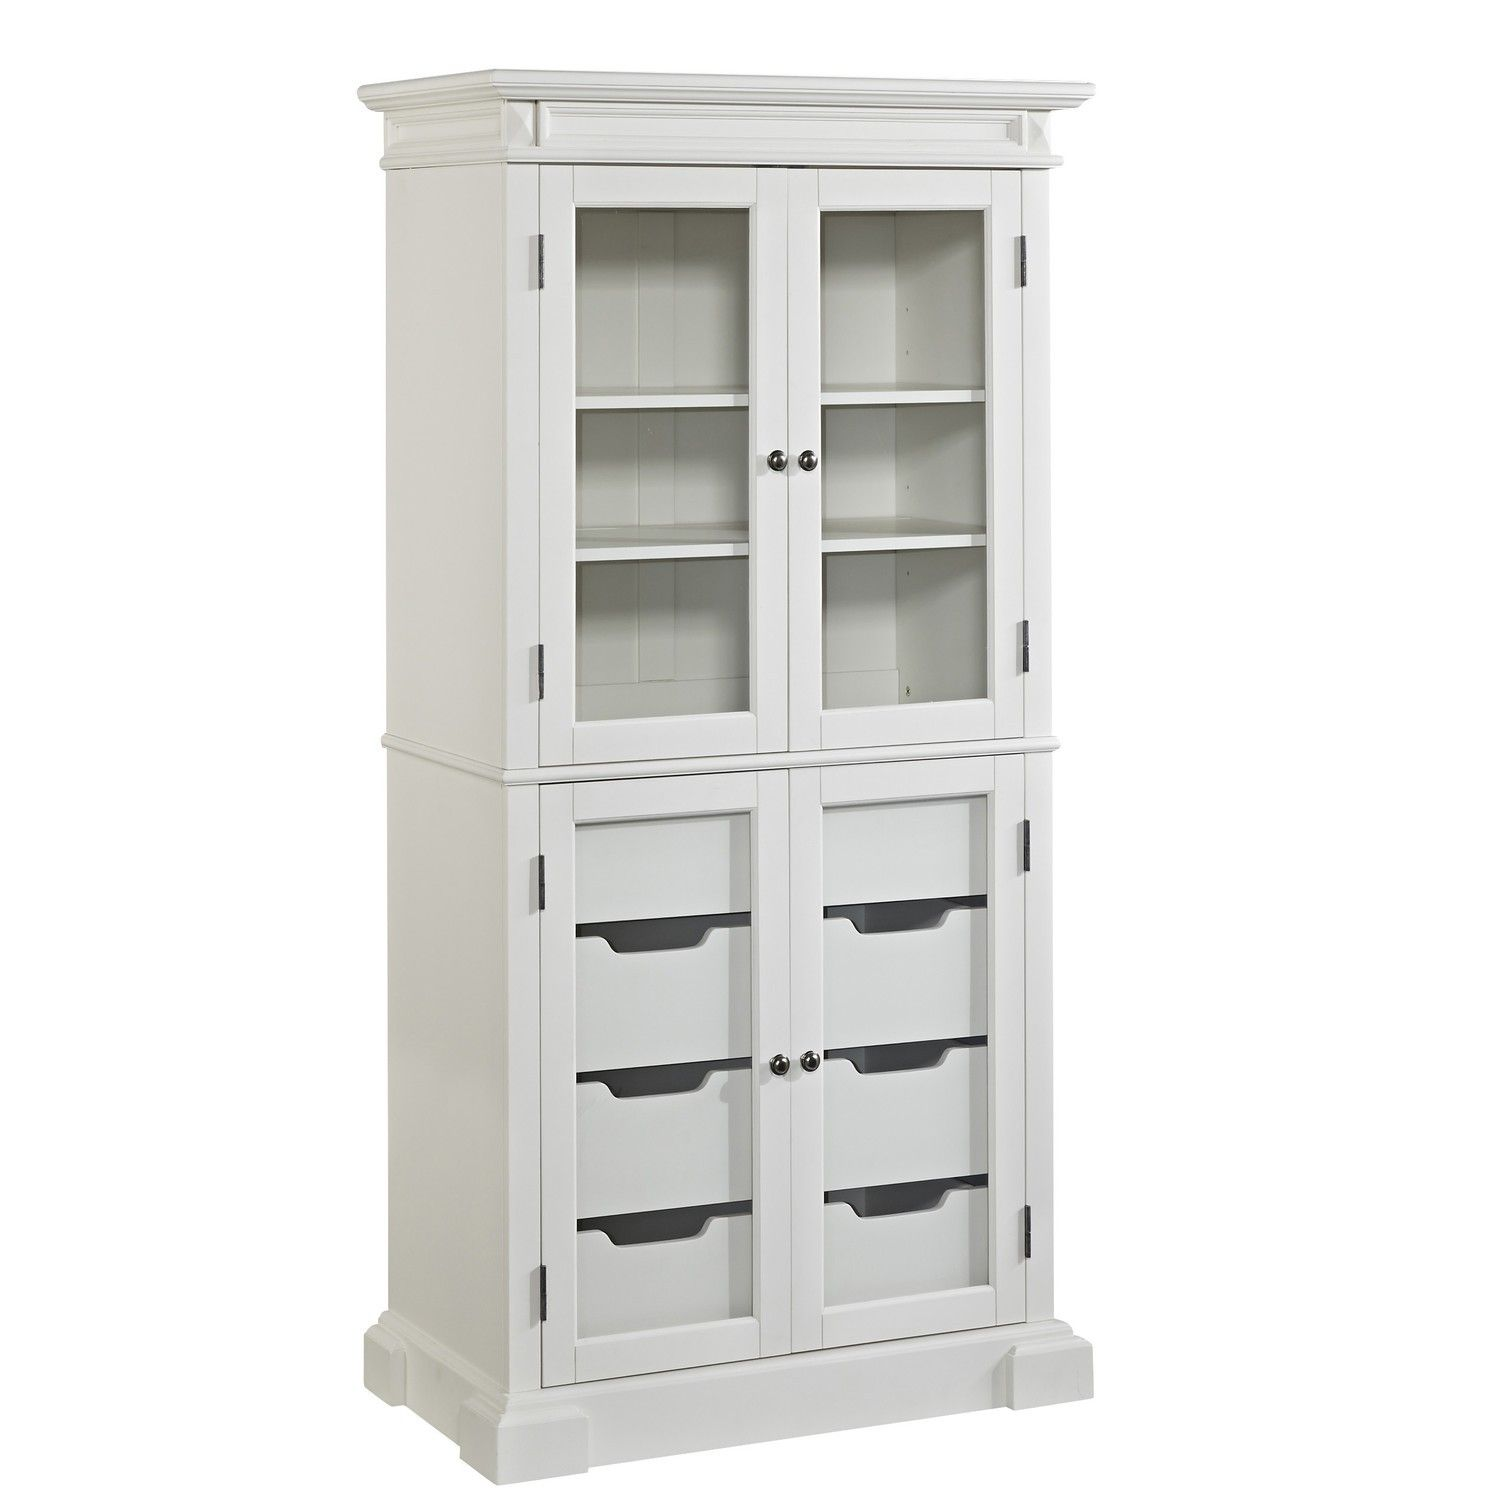 Exceptional Furniture Kitchen White Lacquer Wooden Pantry Cabinet With